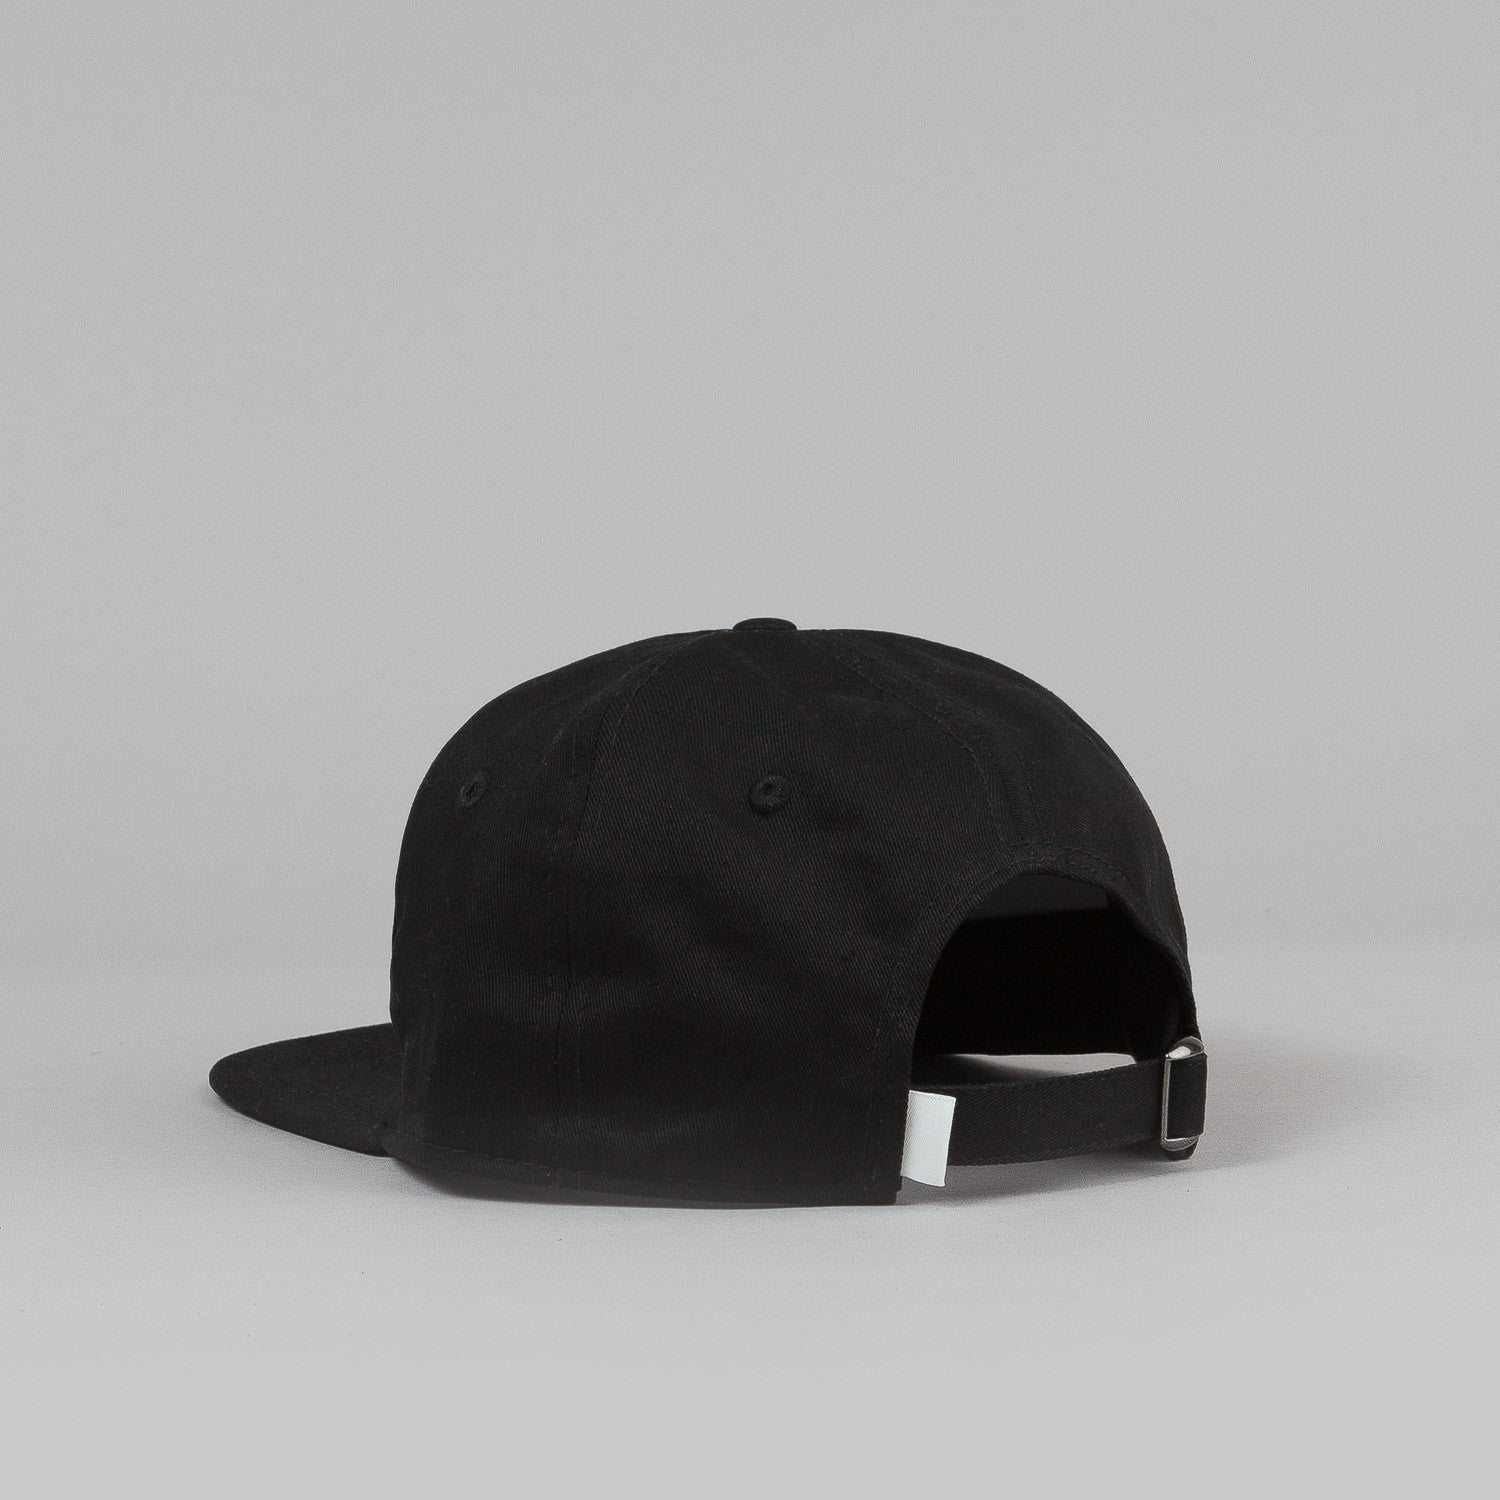 Skateboard Cafe Script Deconstructed 5 Panel Cap - Black